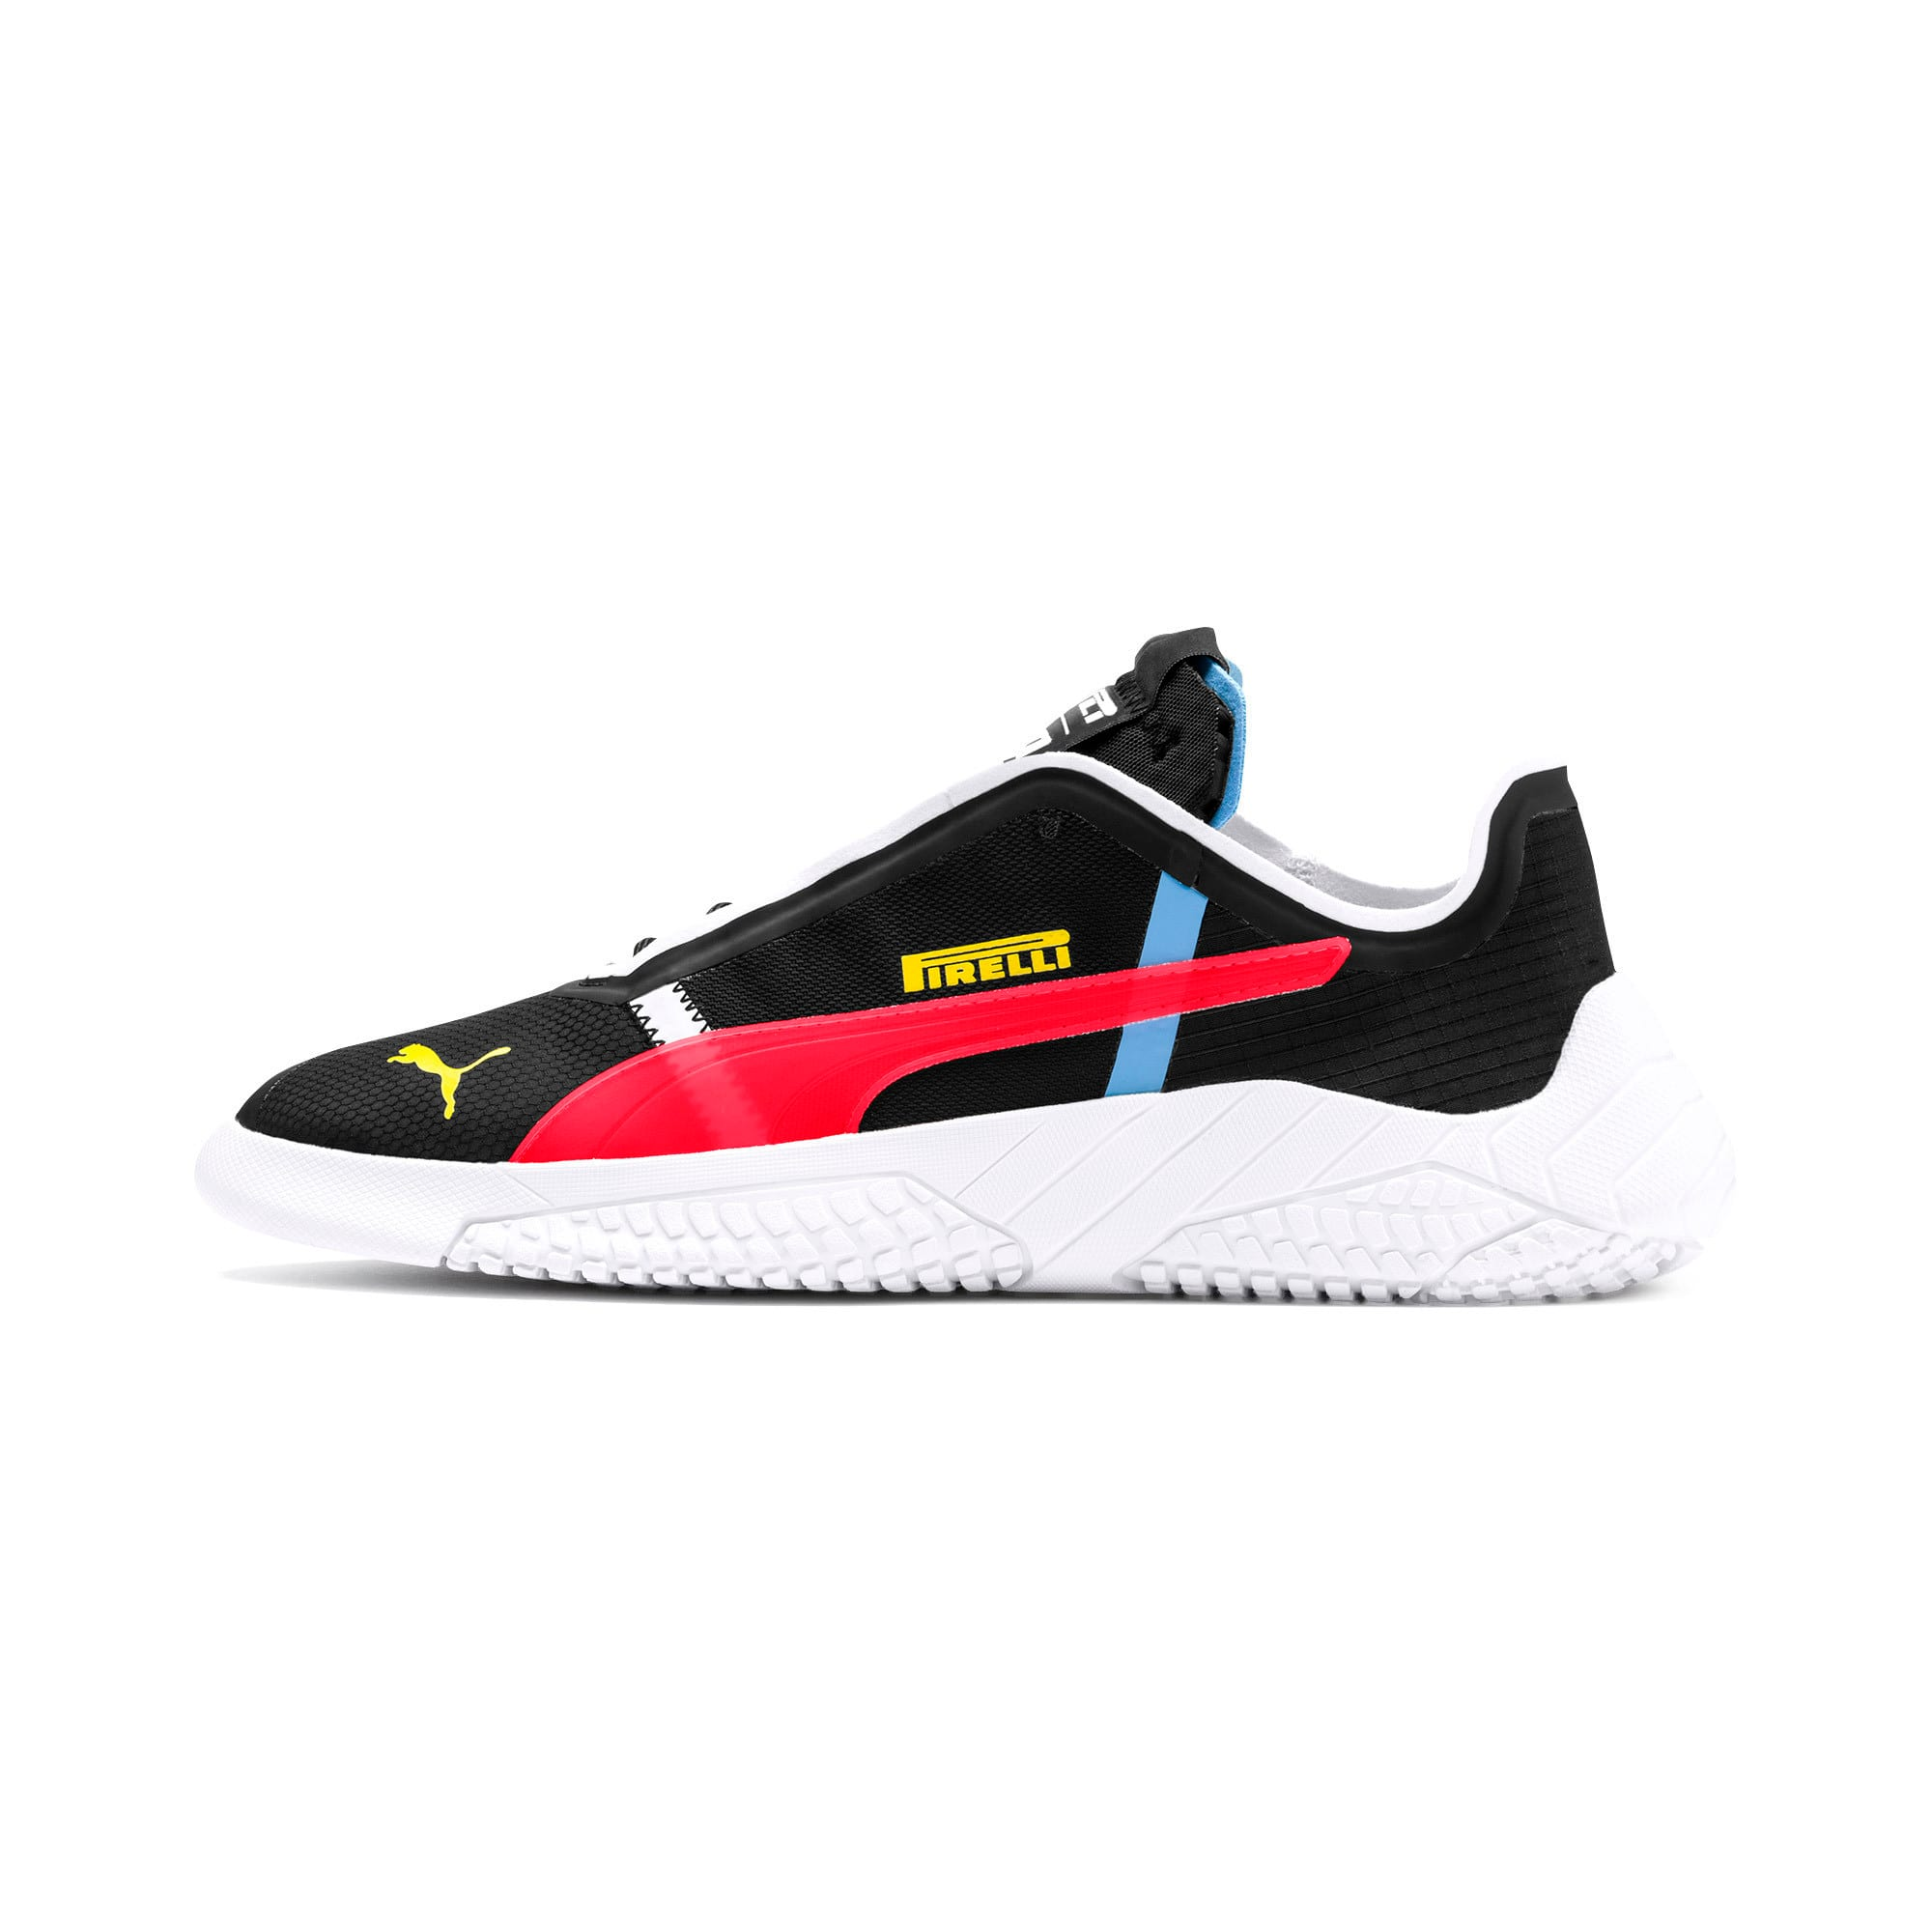 Thumbnail 1 of Pirelli Replicat-X Trainers, Black-Puma Red- White, medium